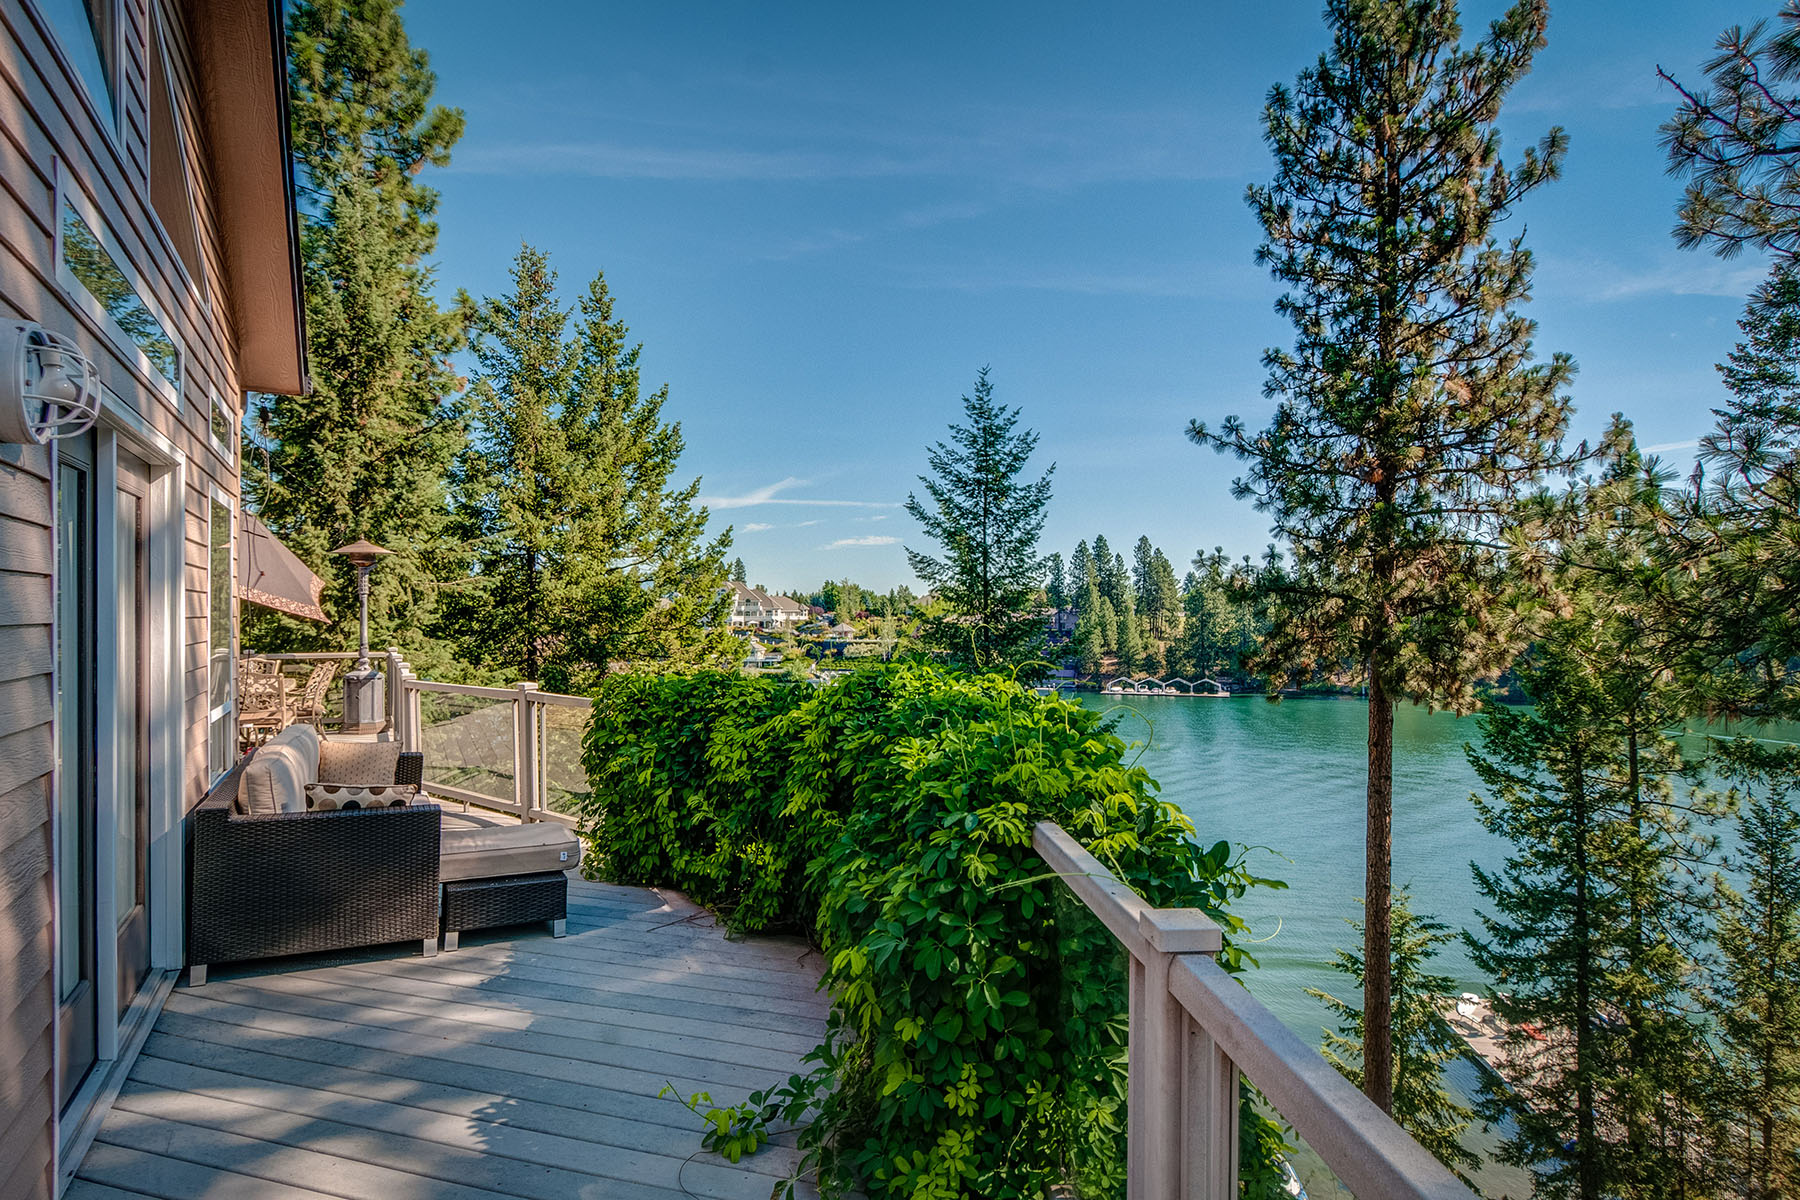 Property For Sale at ENTERTAINER'S DELIGHT ON THE BEAUTIFUL SPOKANE RIVER!